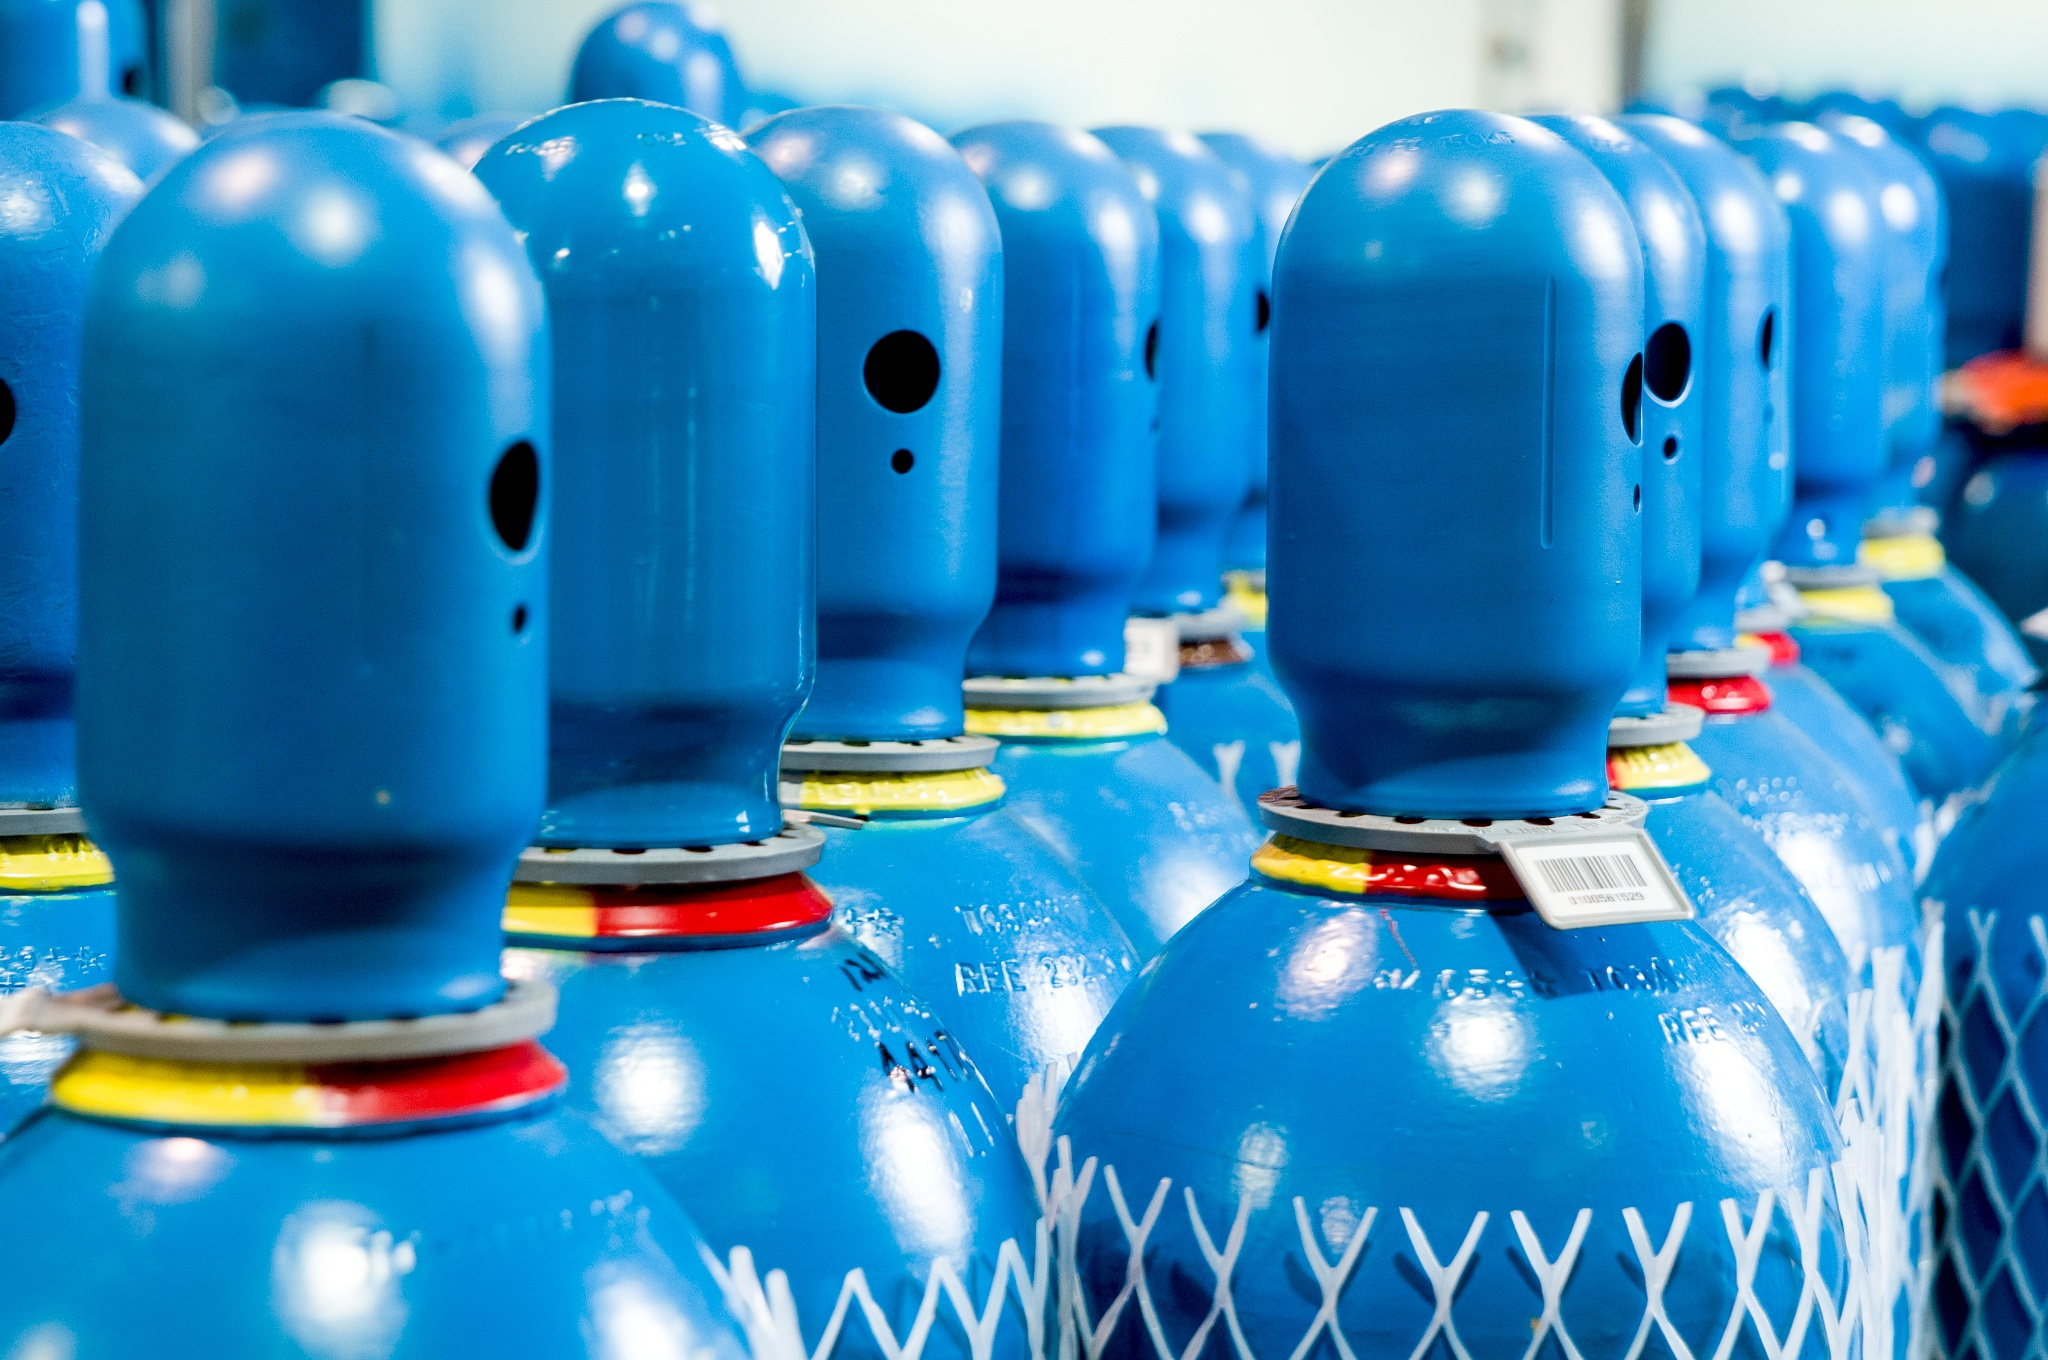 Close up showing blue caps and shoulders of rows of specialty gas cylinders at Alpha New Jersey. Newly labelled and netted cylinders, ready for delivery.